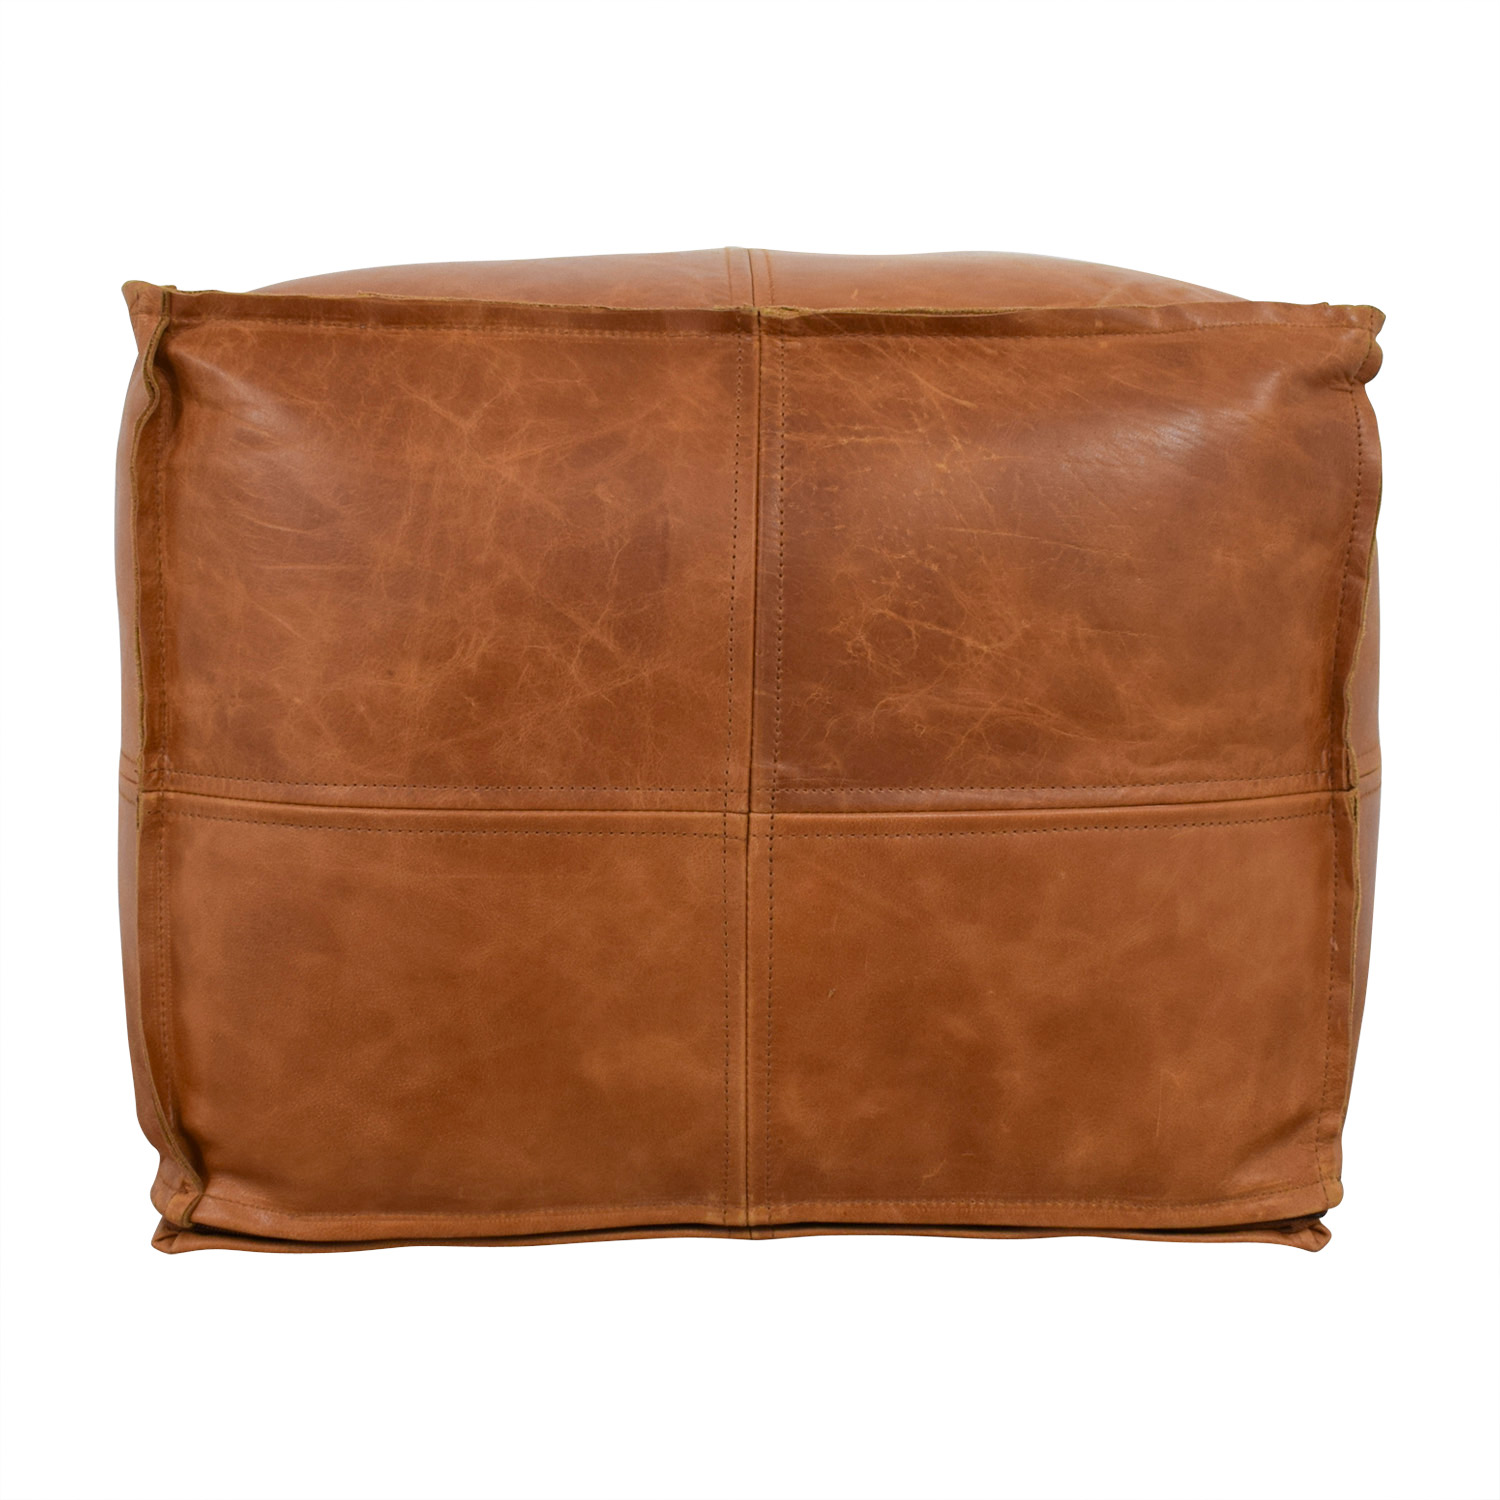 Groovy 41 Off Cb2 Cb2 Saddle Brown Leather Pouf Chairs Dailytribune Chair Design For Home Dailytribuneorg